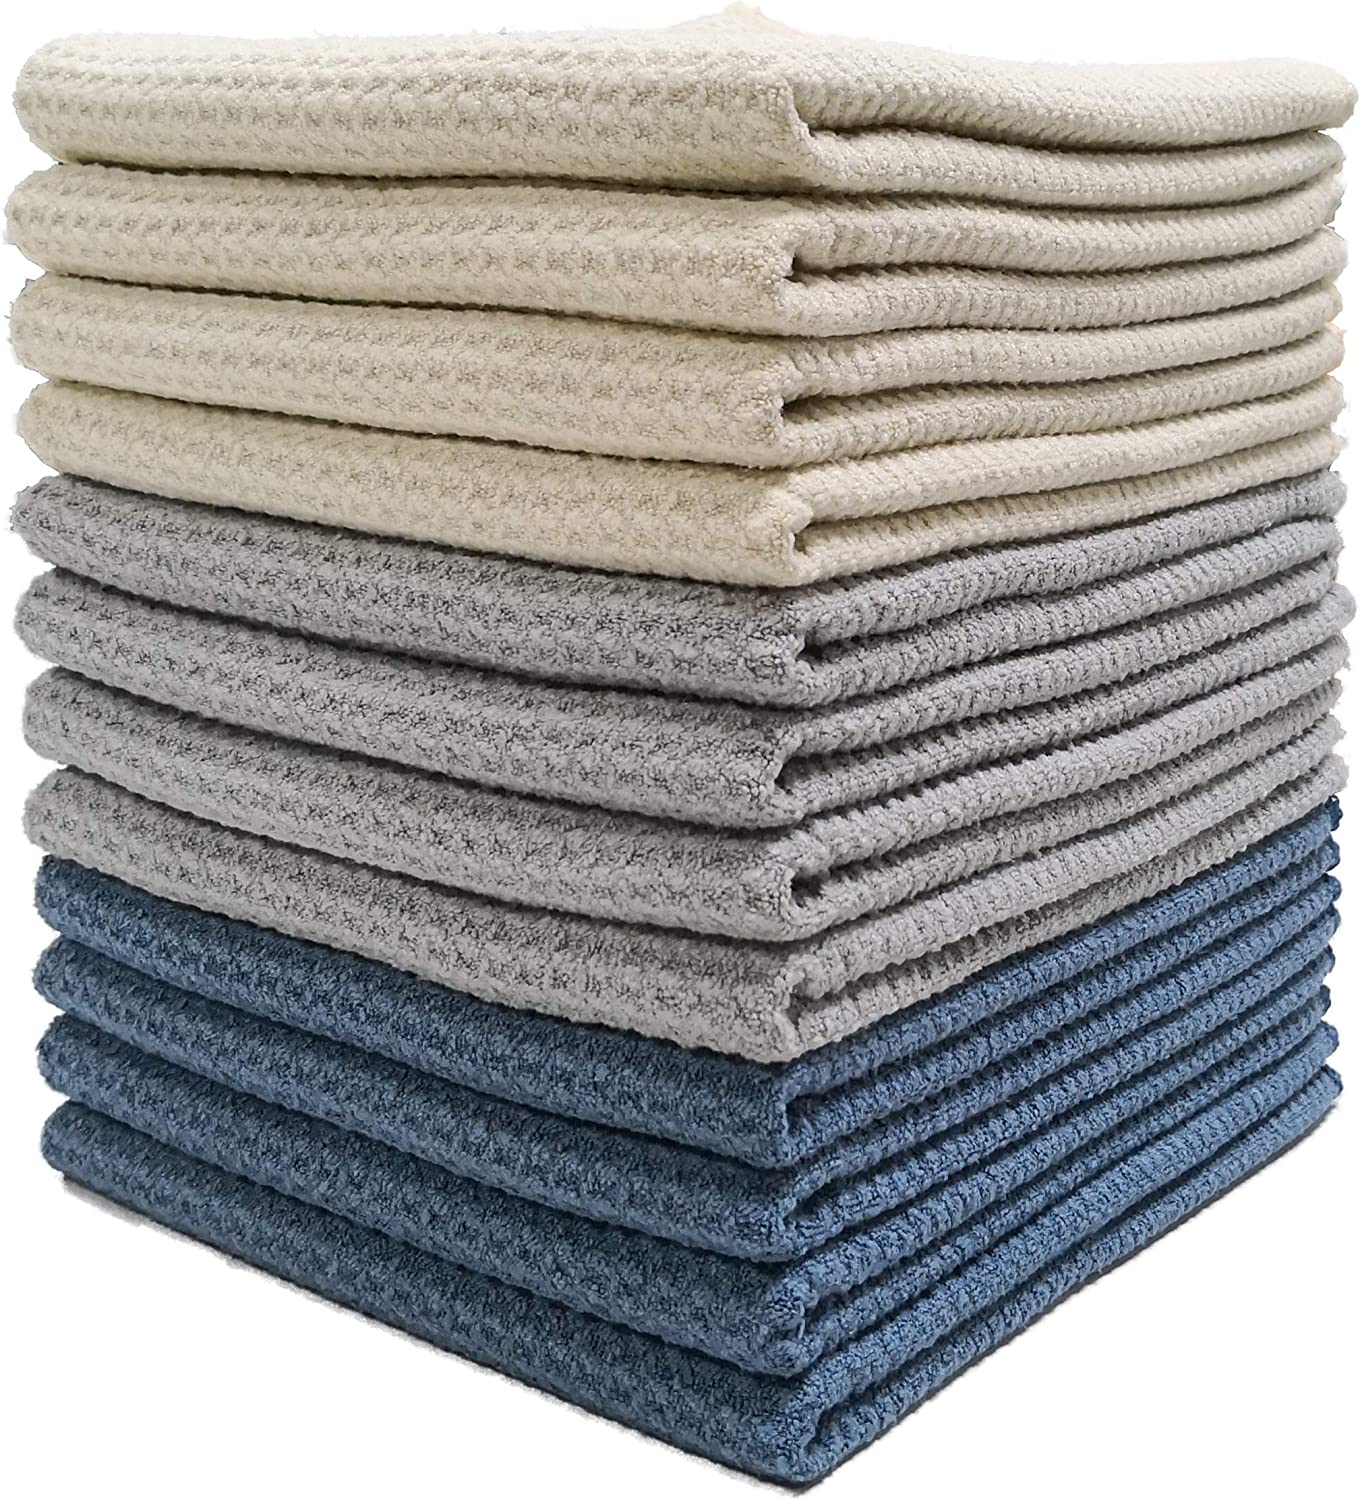 Polyte Premium Microfiber Kitchen Dish Hand Towel Waffle Weave (Dark Blue,  Gray, Off White, 16x28) 12 Pack